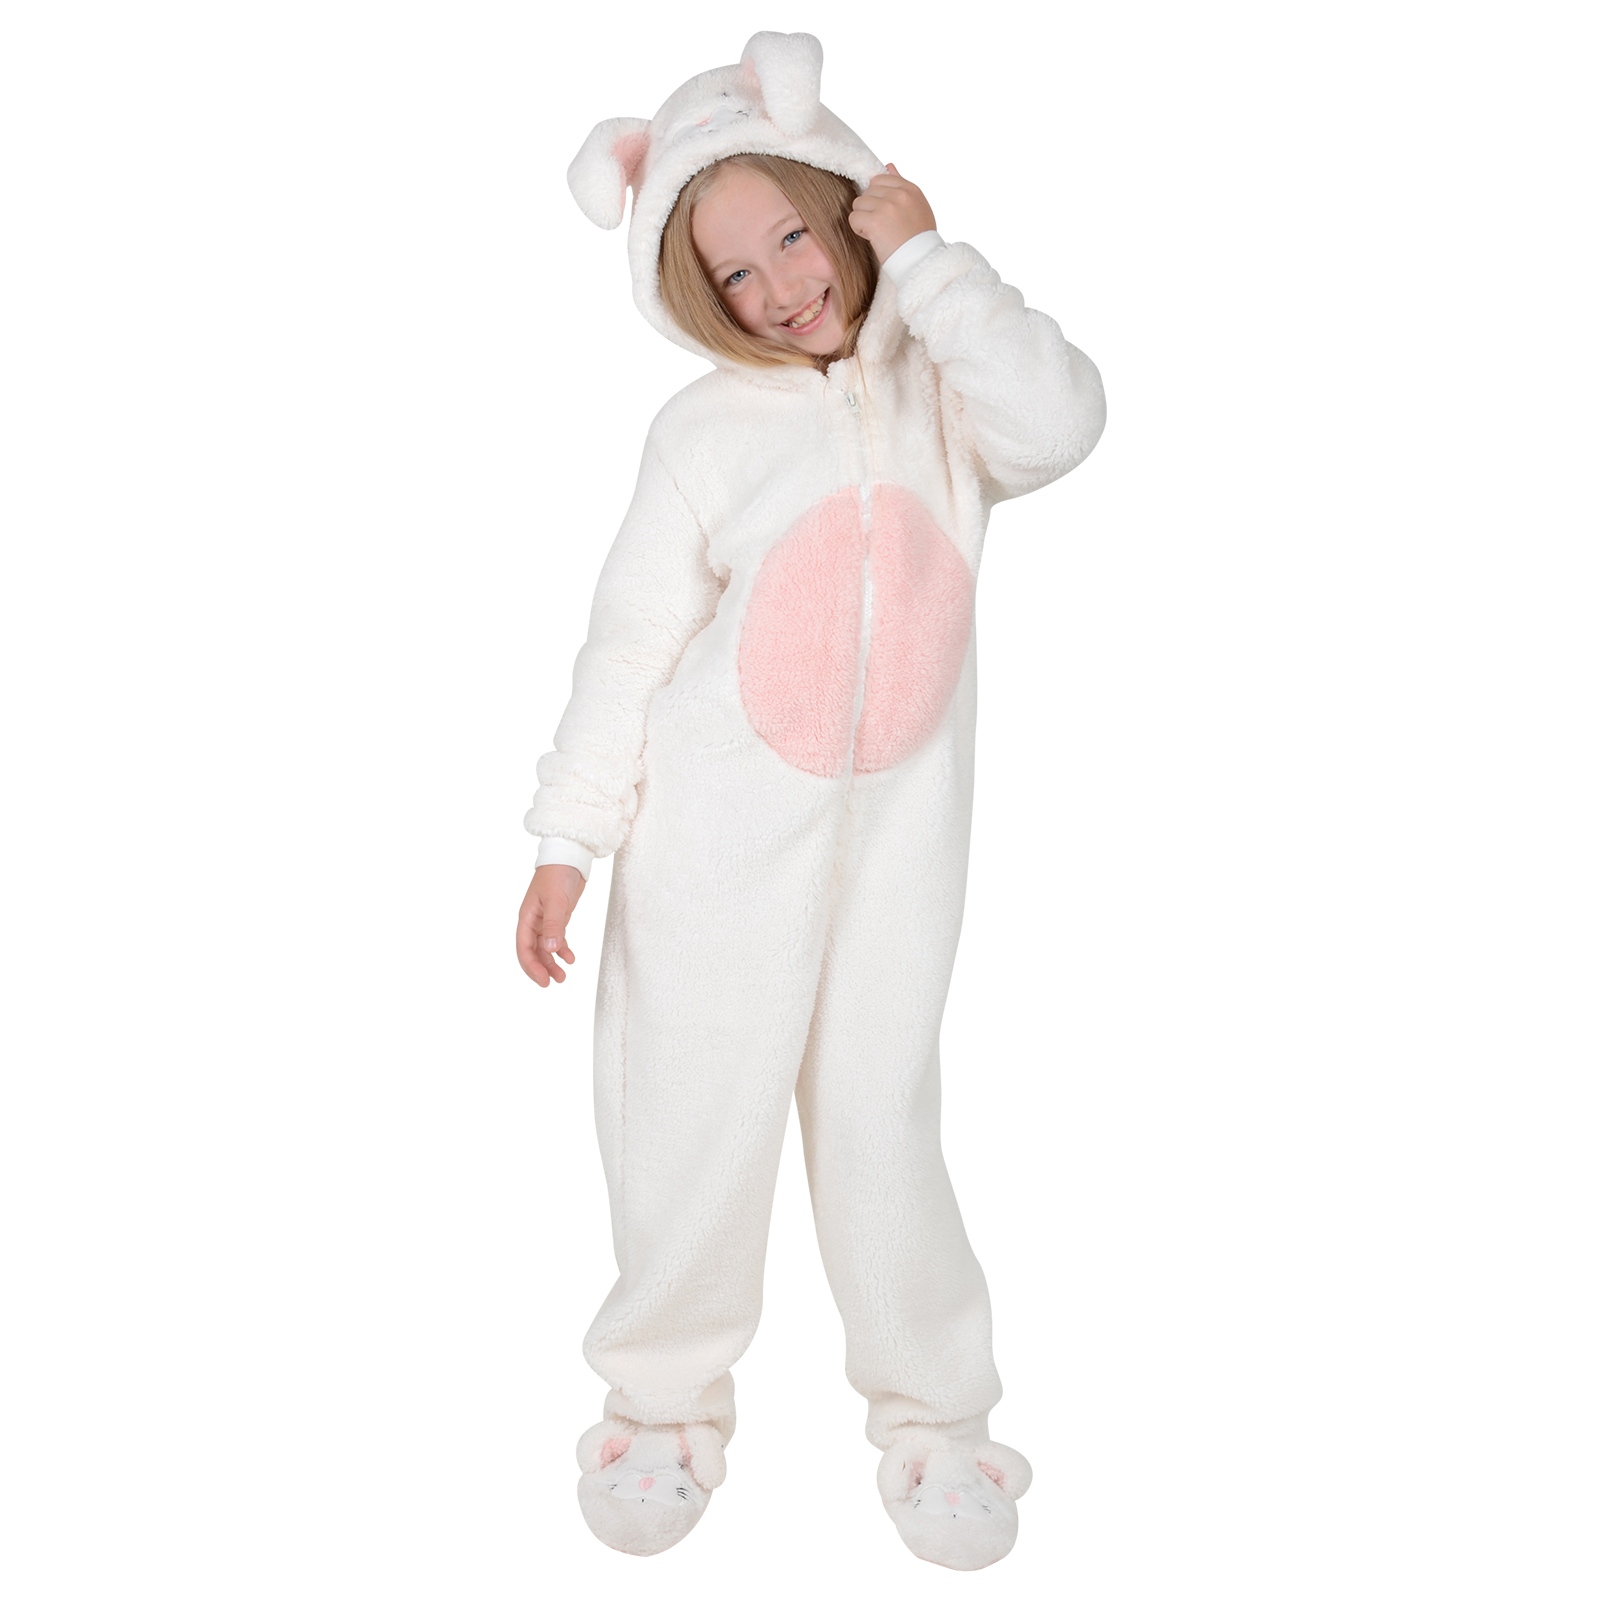 Find great deals on eBay for onesies for girls. Shop with confidence.